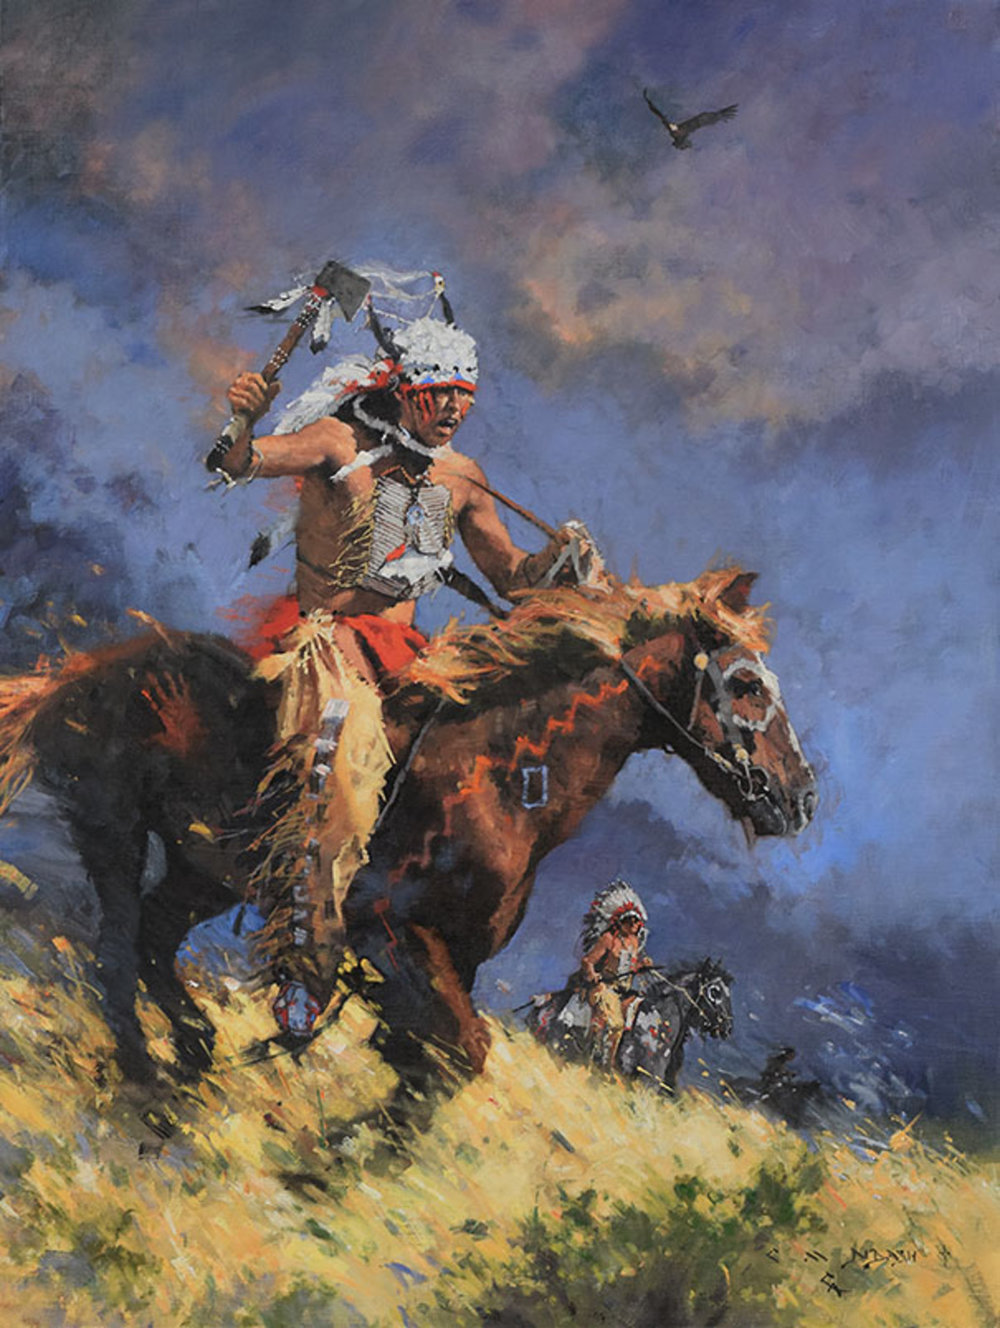 """*****SOLD*****  """"THE FEARLESS ONE"""" Oil on Linen 32"""" x 24"""" SOLD at  The Buffalo Bill Art Show and Sale"""